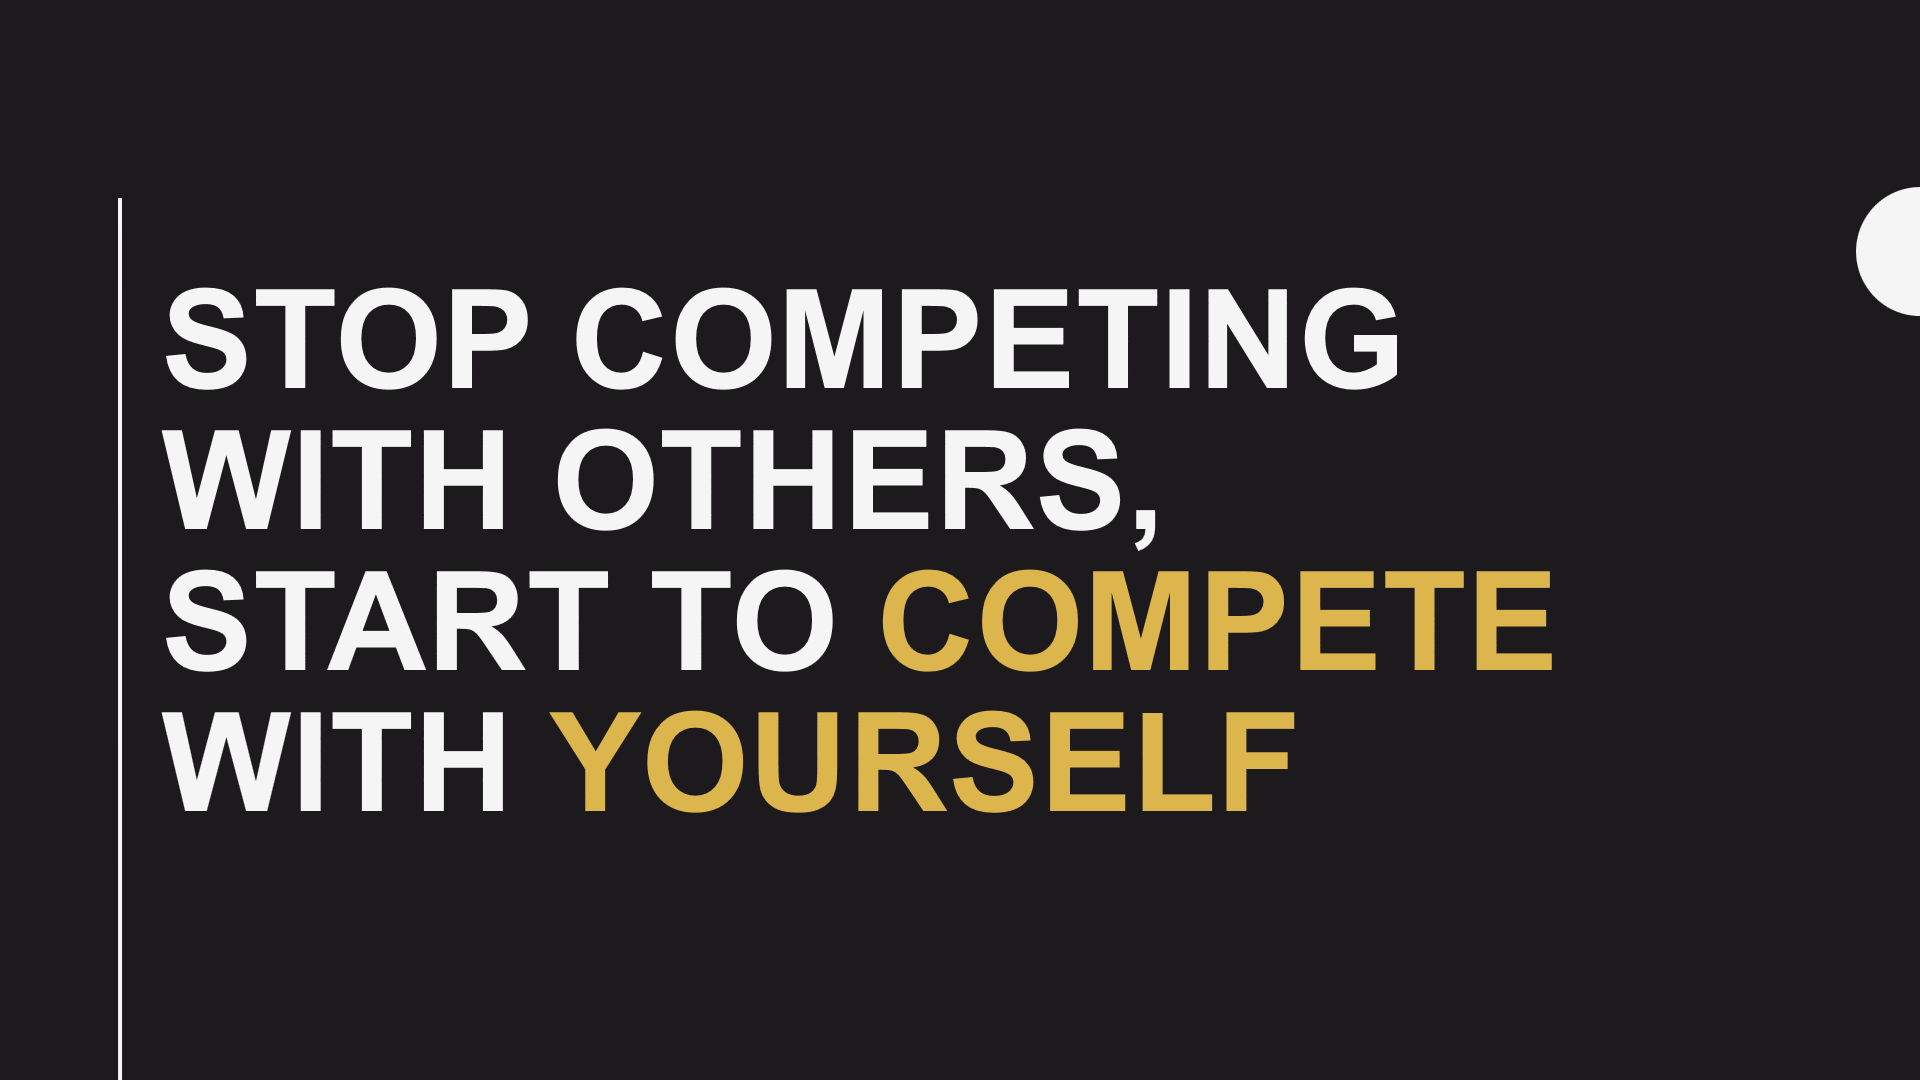 Compete_With_Yourself